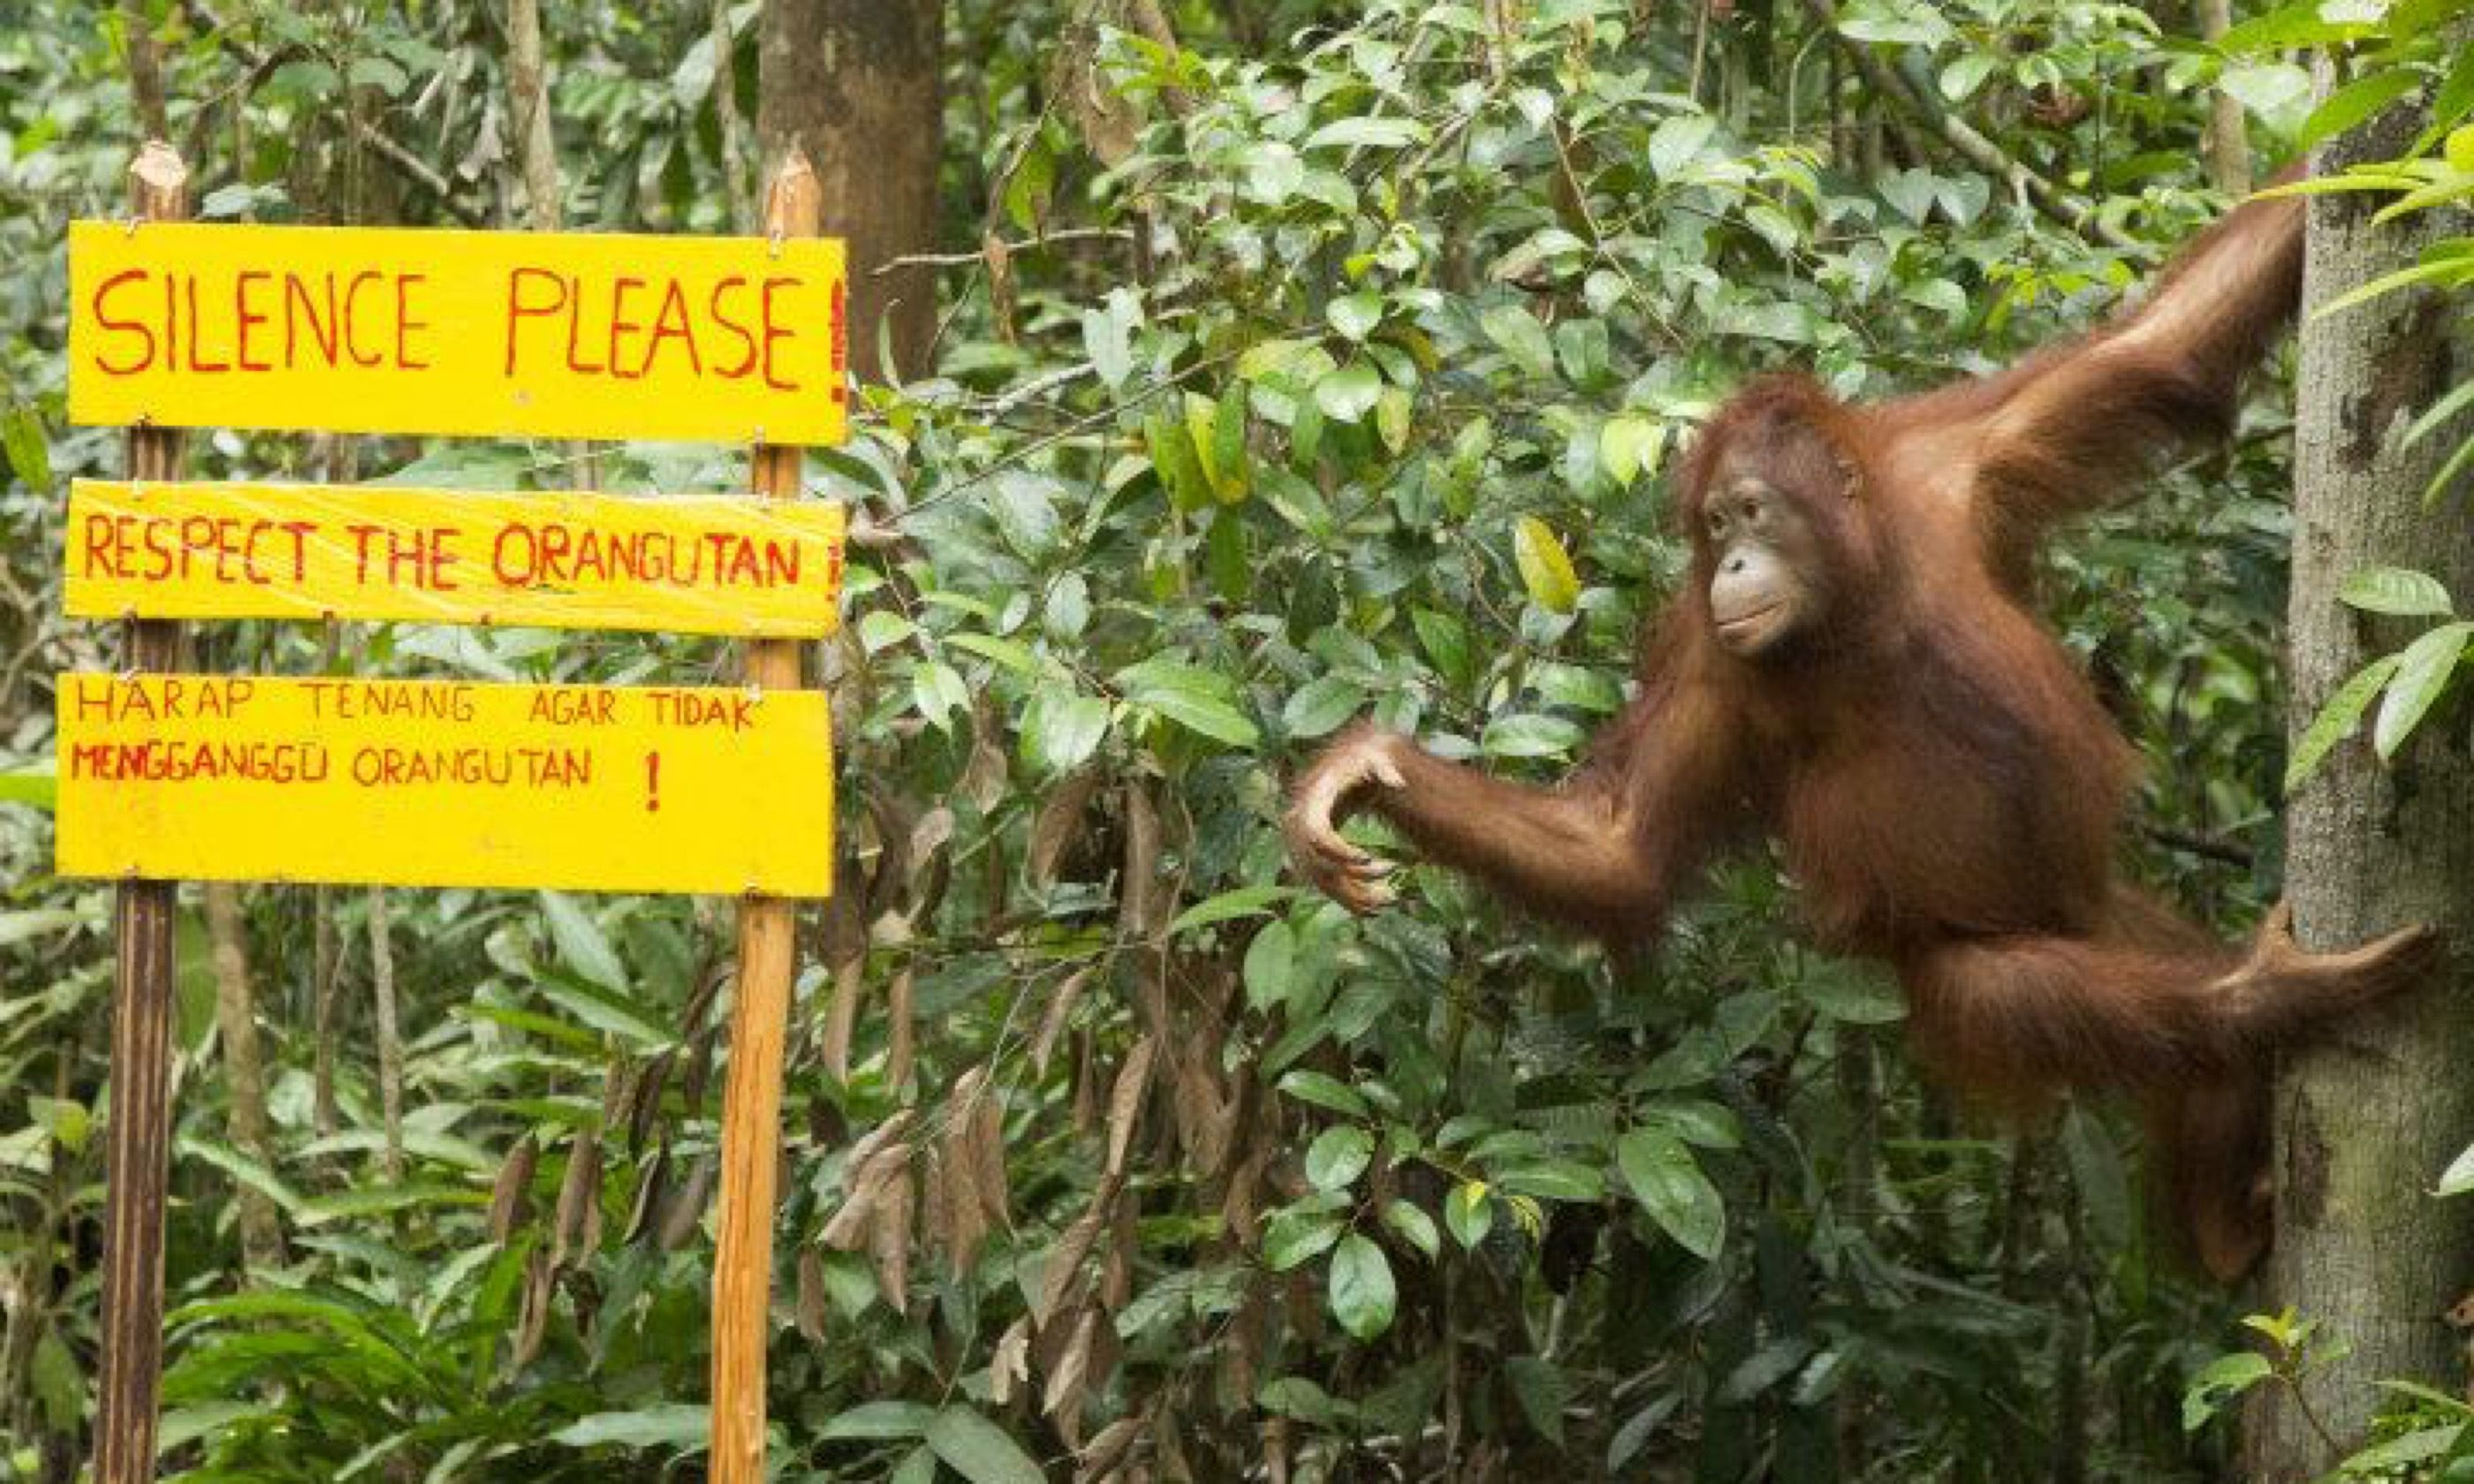 An orangutan points the way (Mauro Cagol)